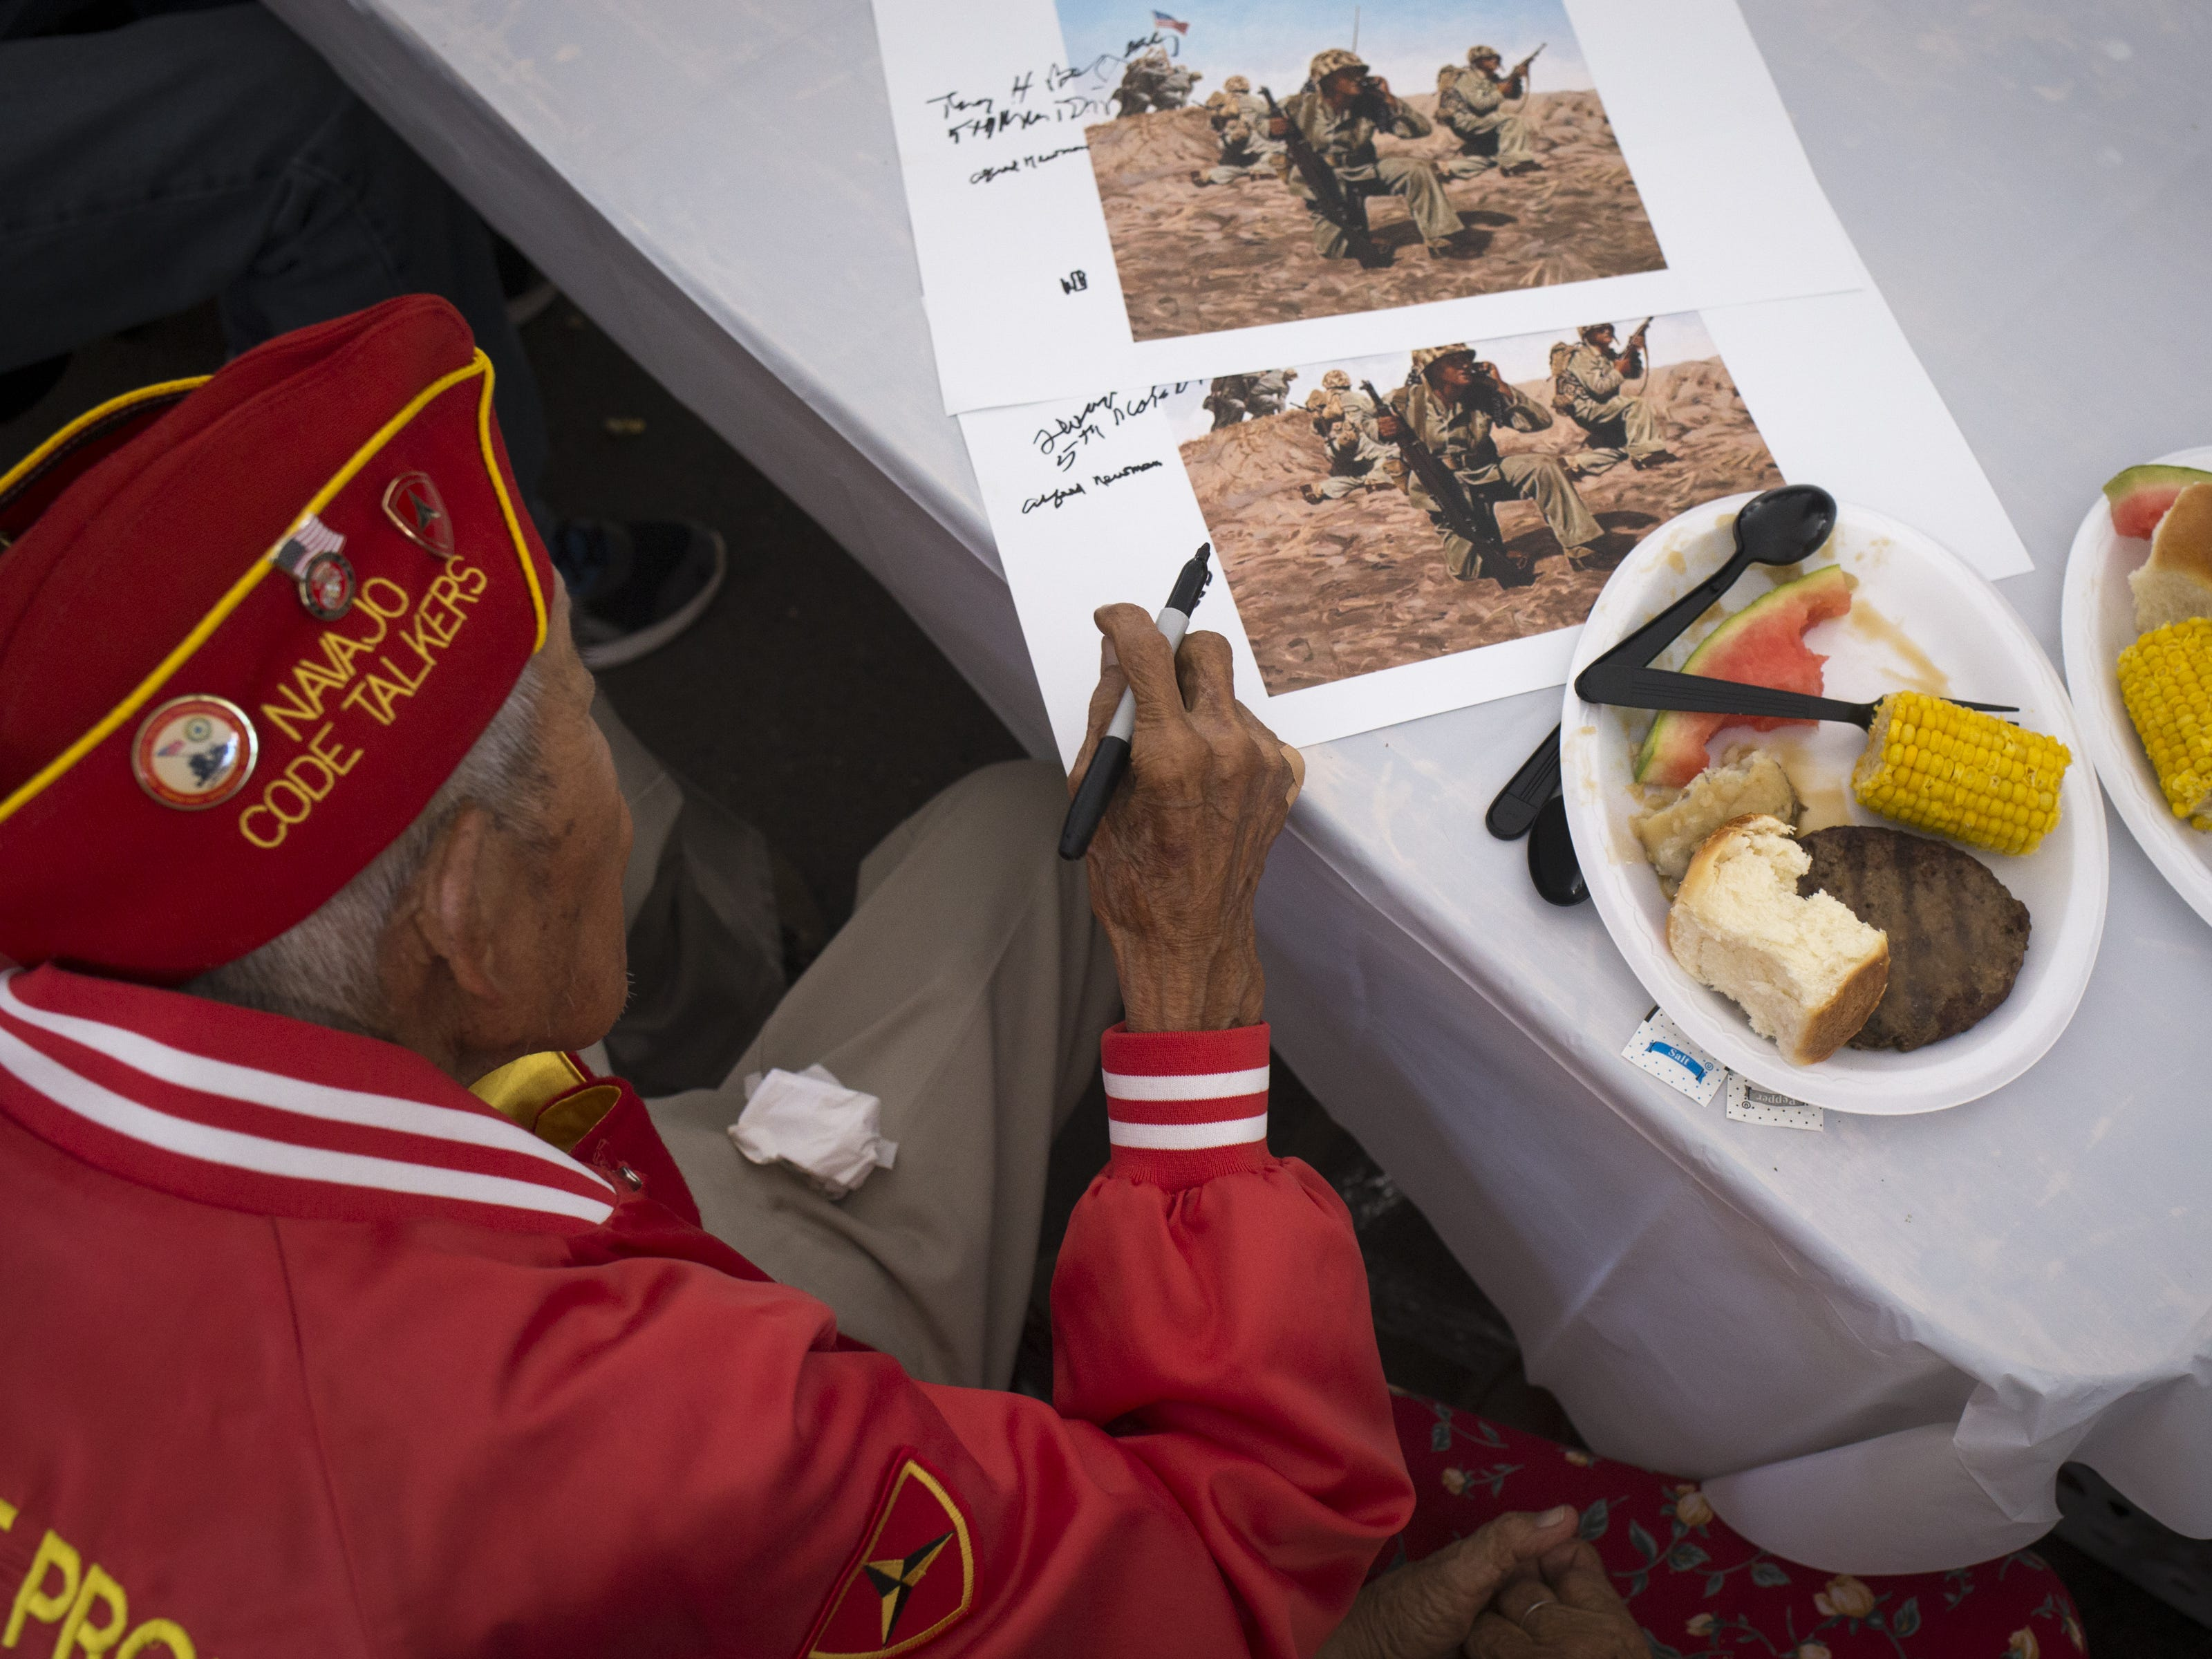 Navajo Code Talker Alfred K. Newman signs a poster after the Navajo Nation Code Talkers Day ceremony on Aug. 14, 2018, at the Veterans Memorial Park in Window Rock.